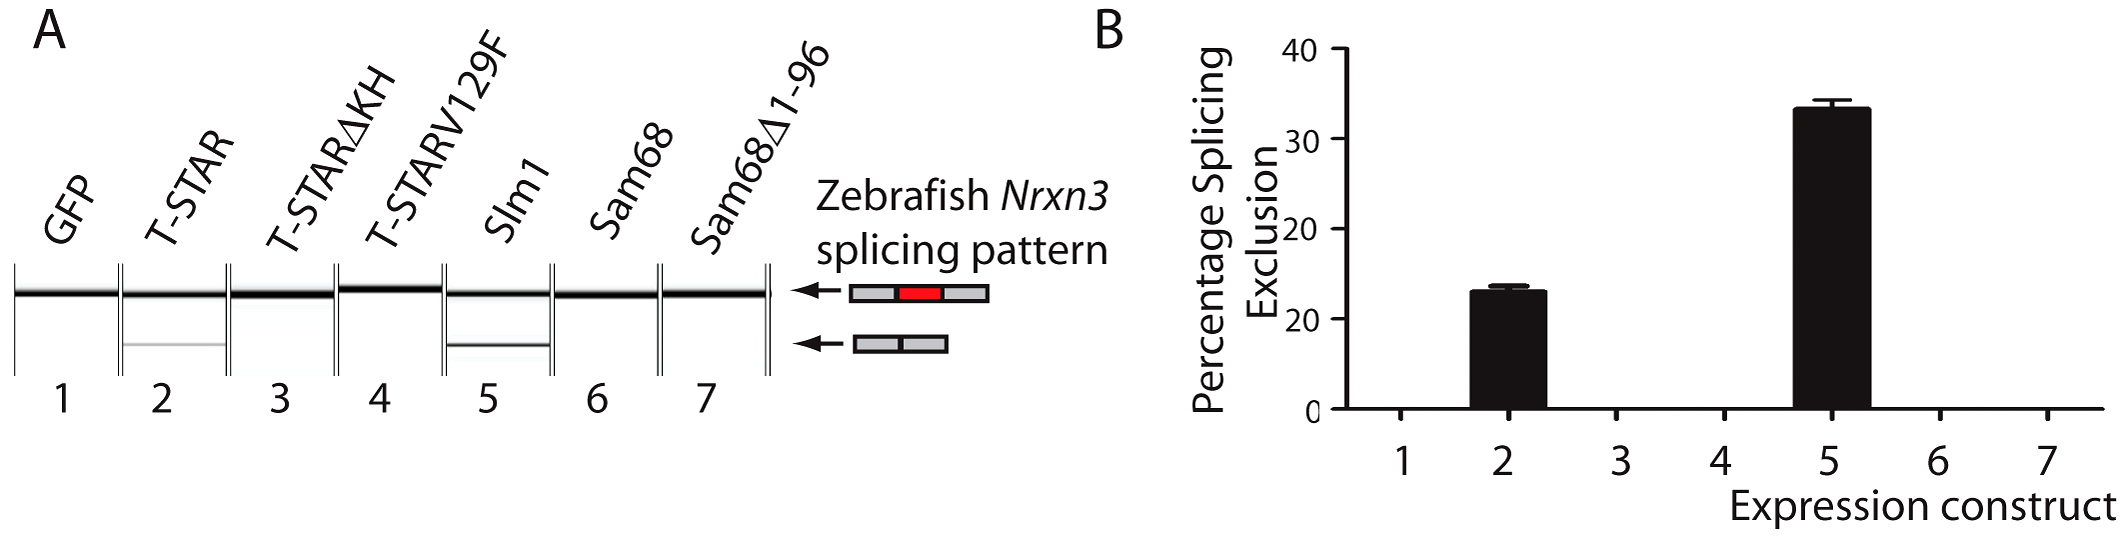 Human T-STAR protein represses splicing inclusion of the Zebrafish <i>Nrxn3</i> AS4 exon.